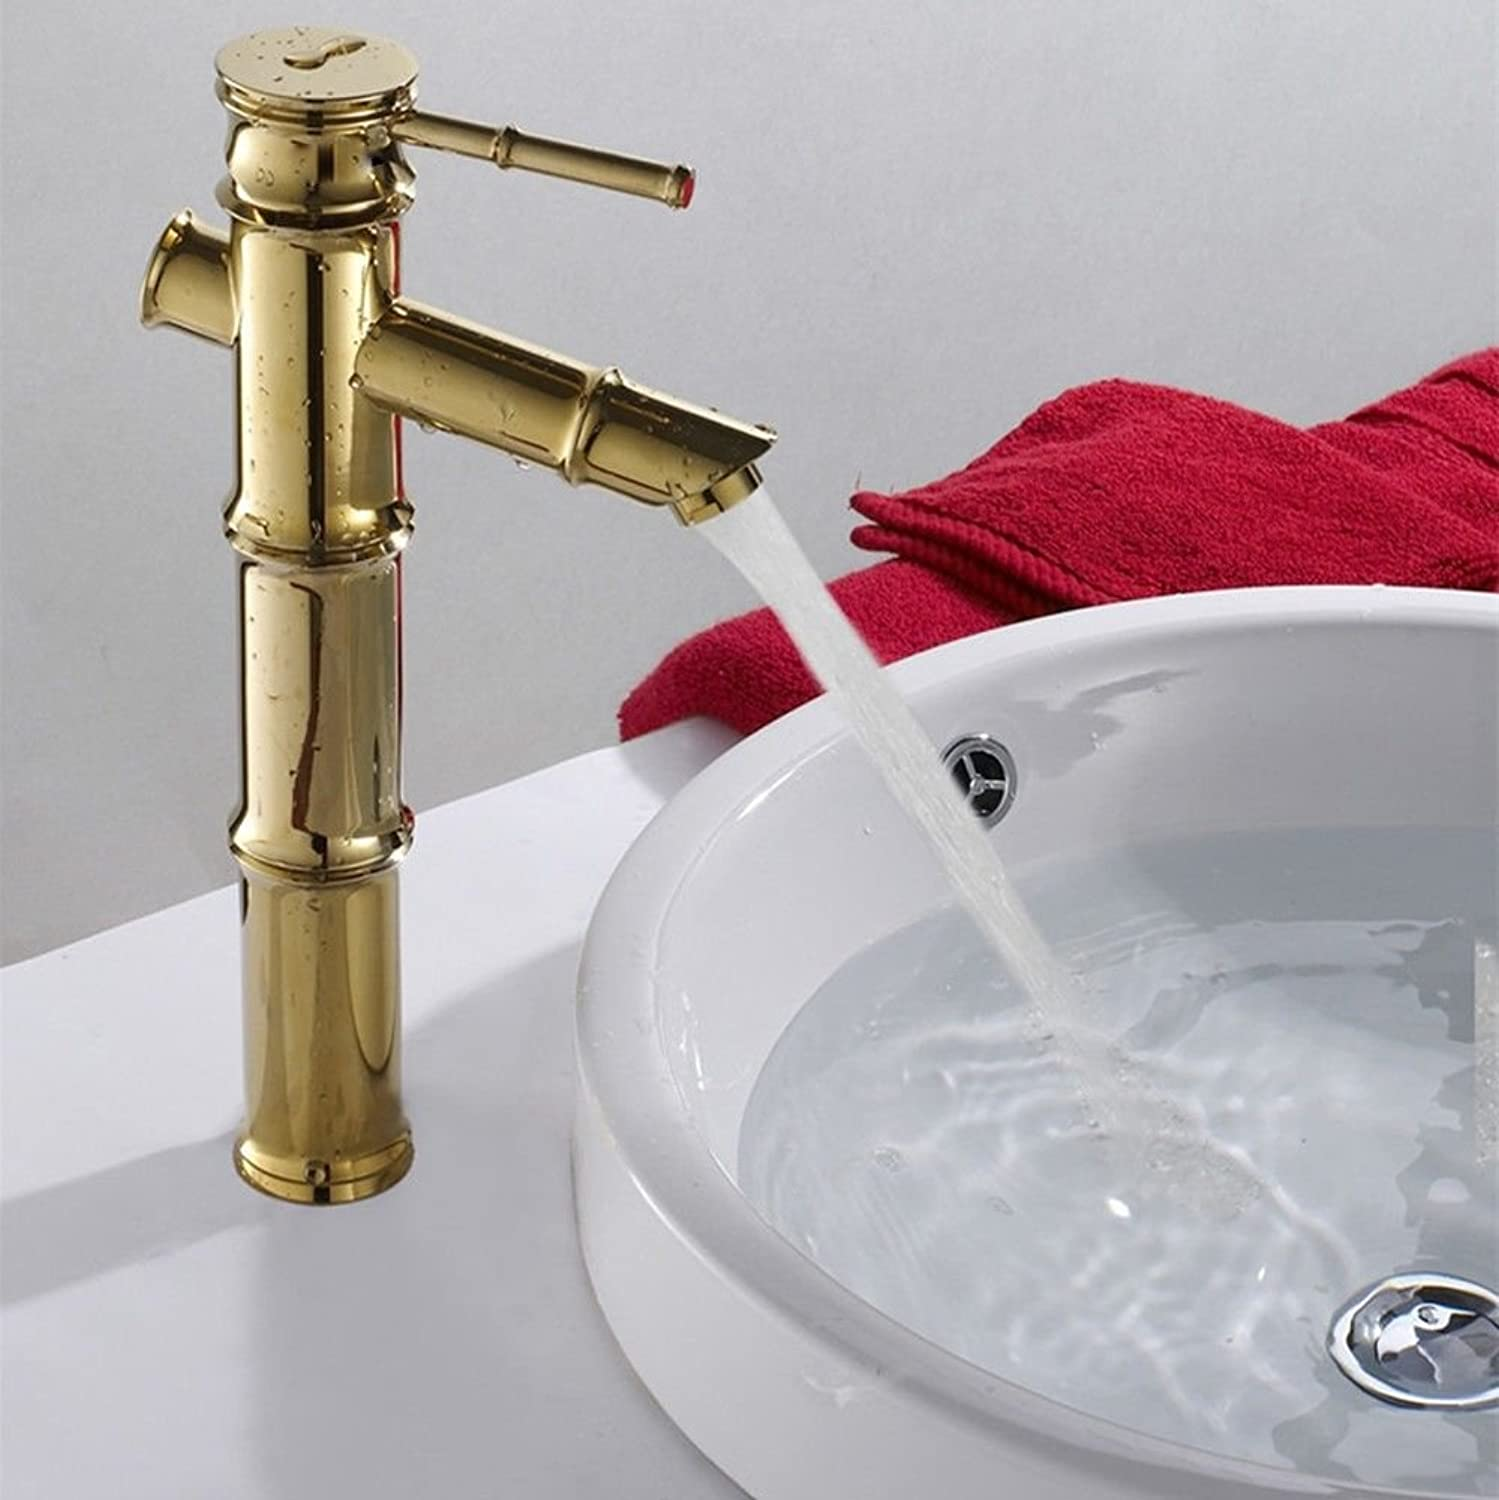 SADASD Contemporary Bathroom Full Copper Basin Faucet gold High-Basin Sink Mixer Tap Ceramic Spool Single Hole Single Handle Cold Water With G1 2 Hose